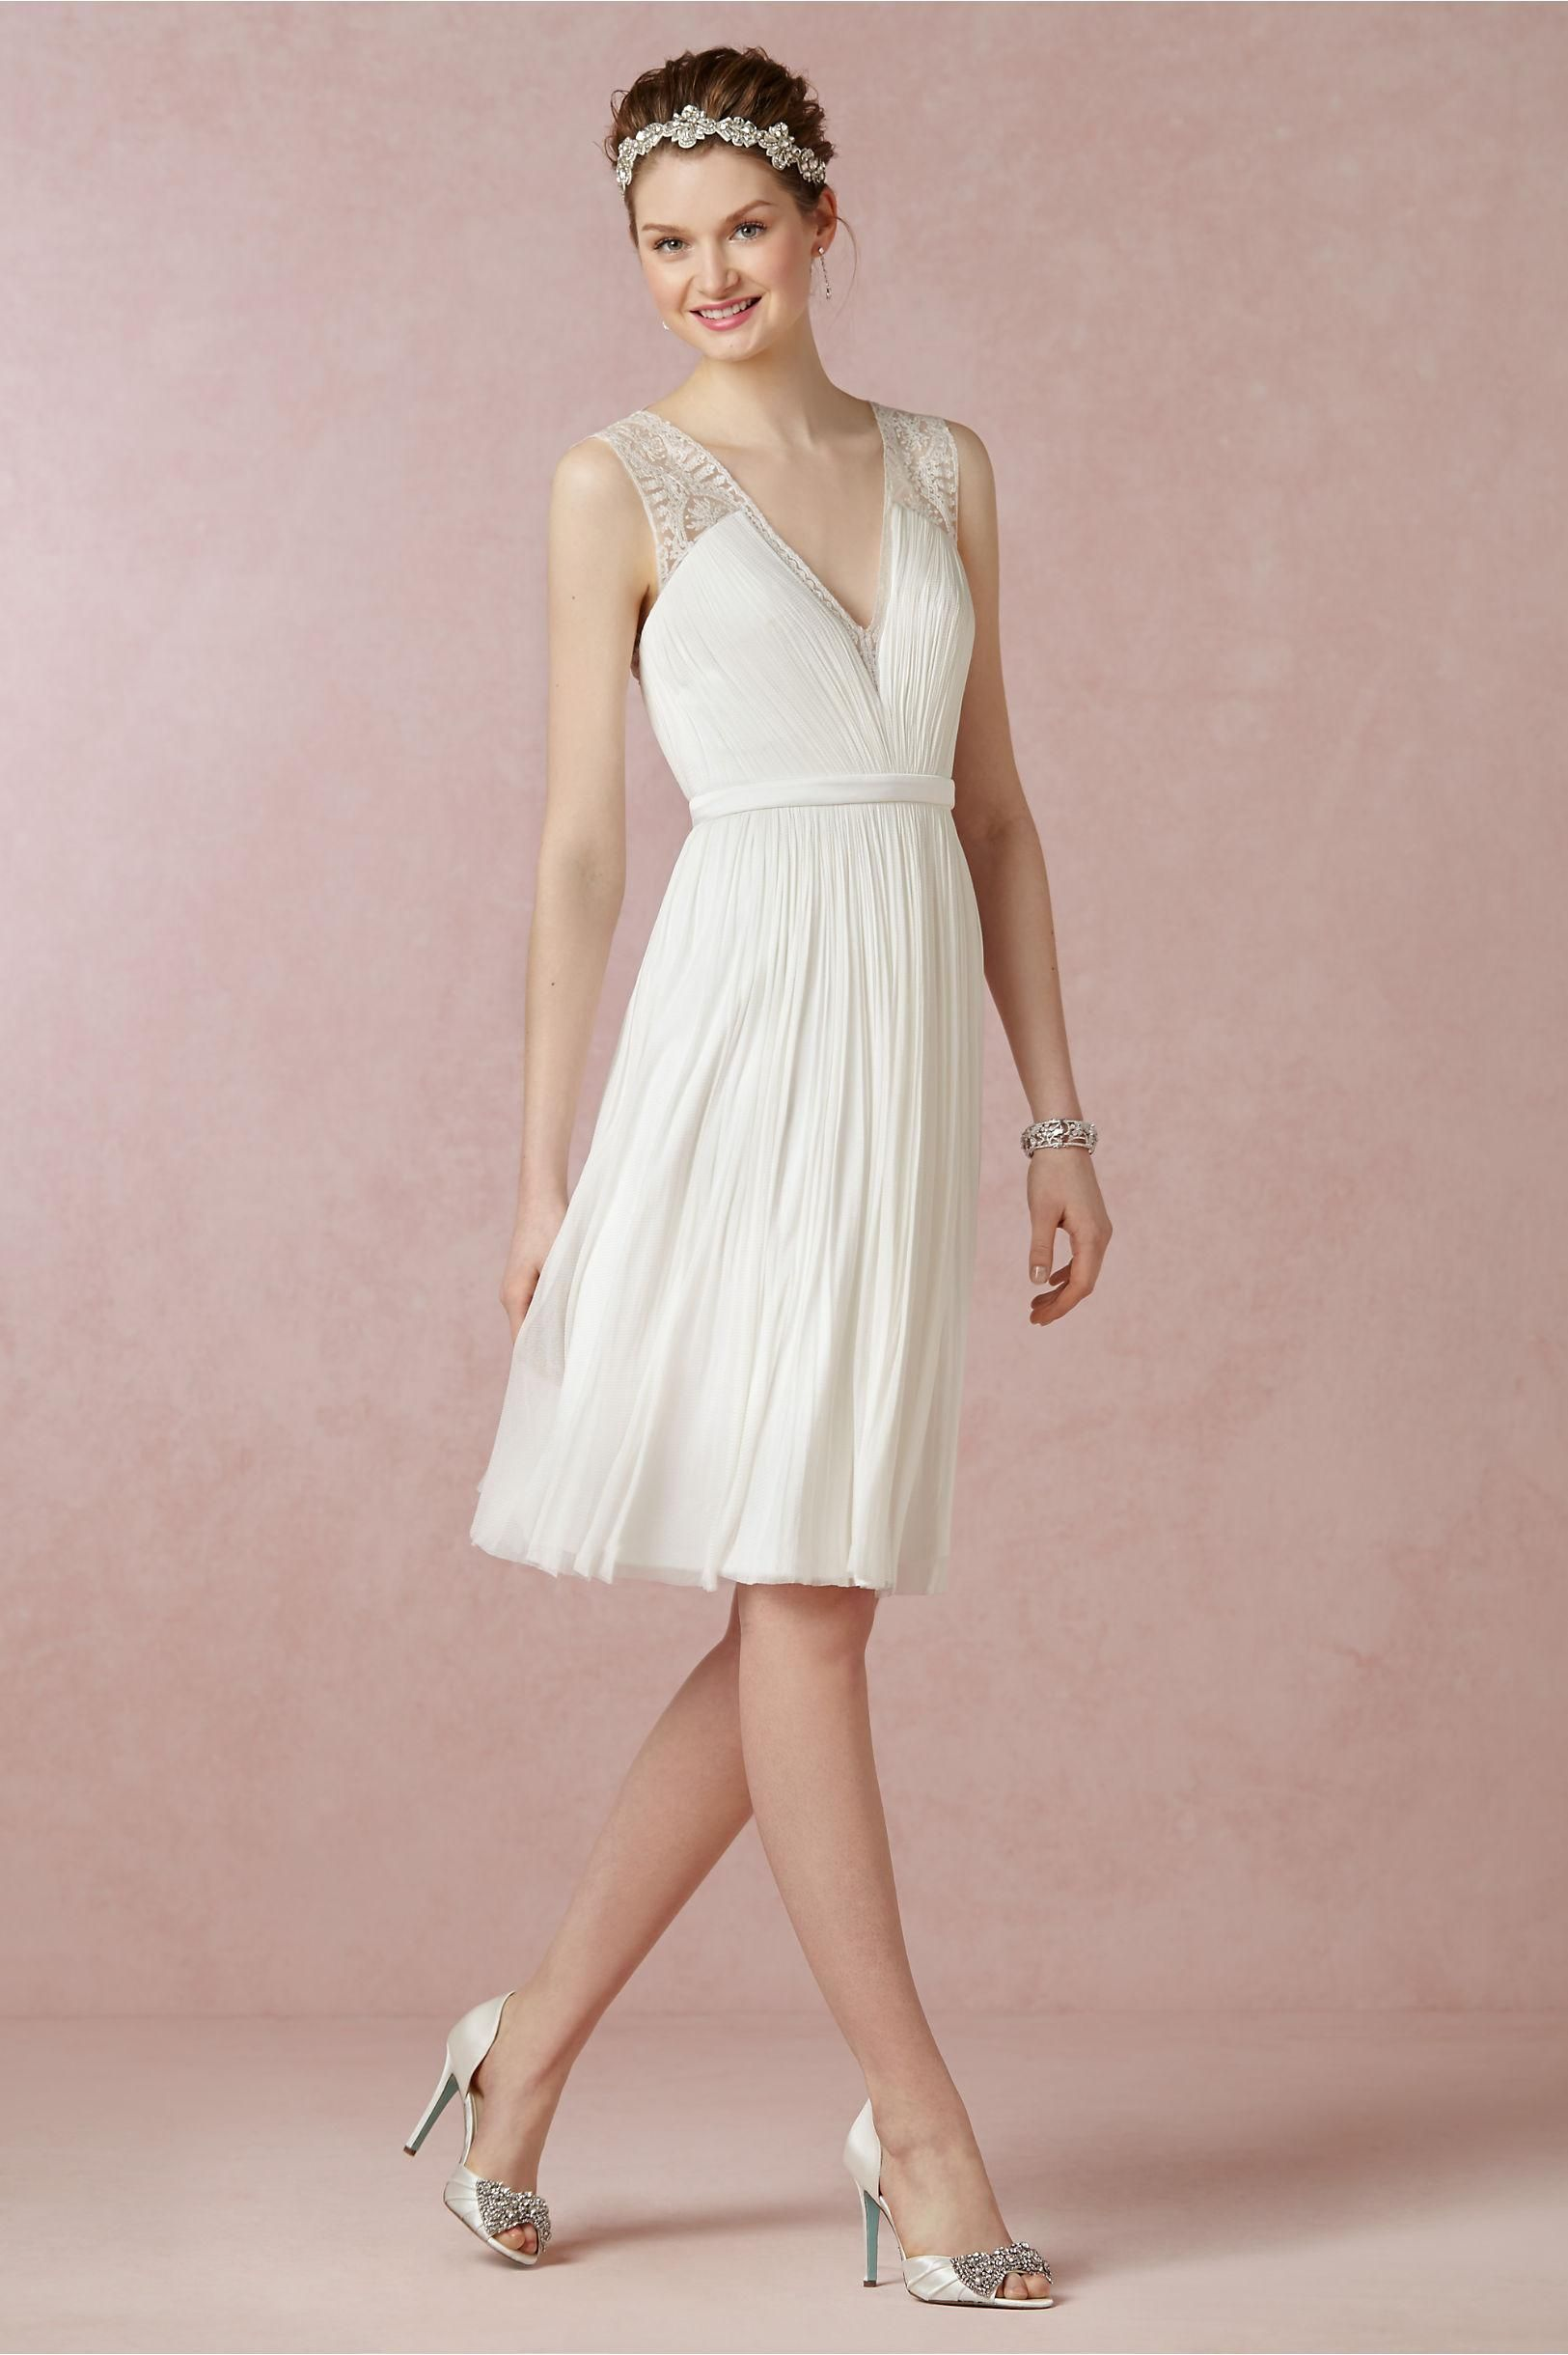 Valley Dress from BHLDN | Pen & Kiley | Pinterest | Vestidos de ...